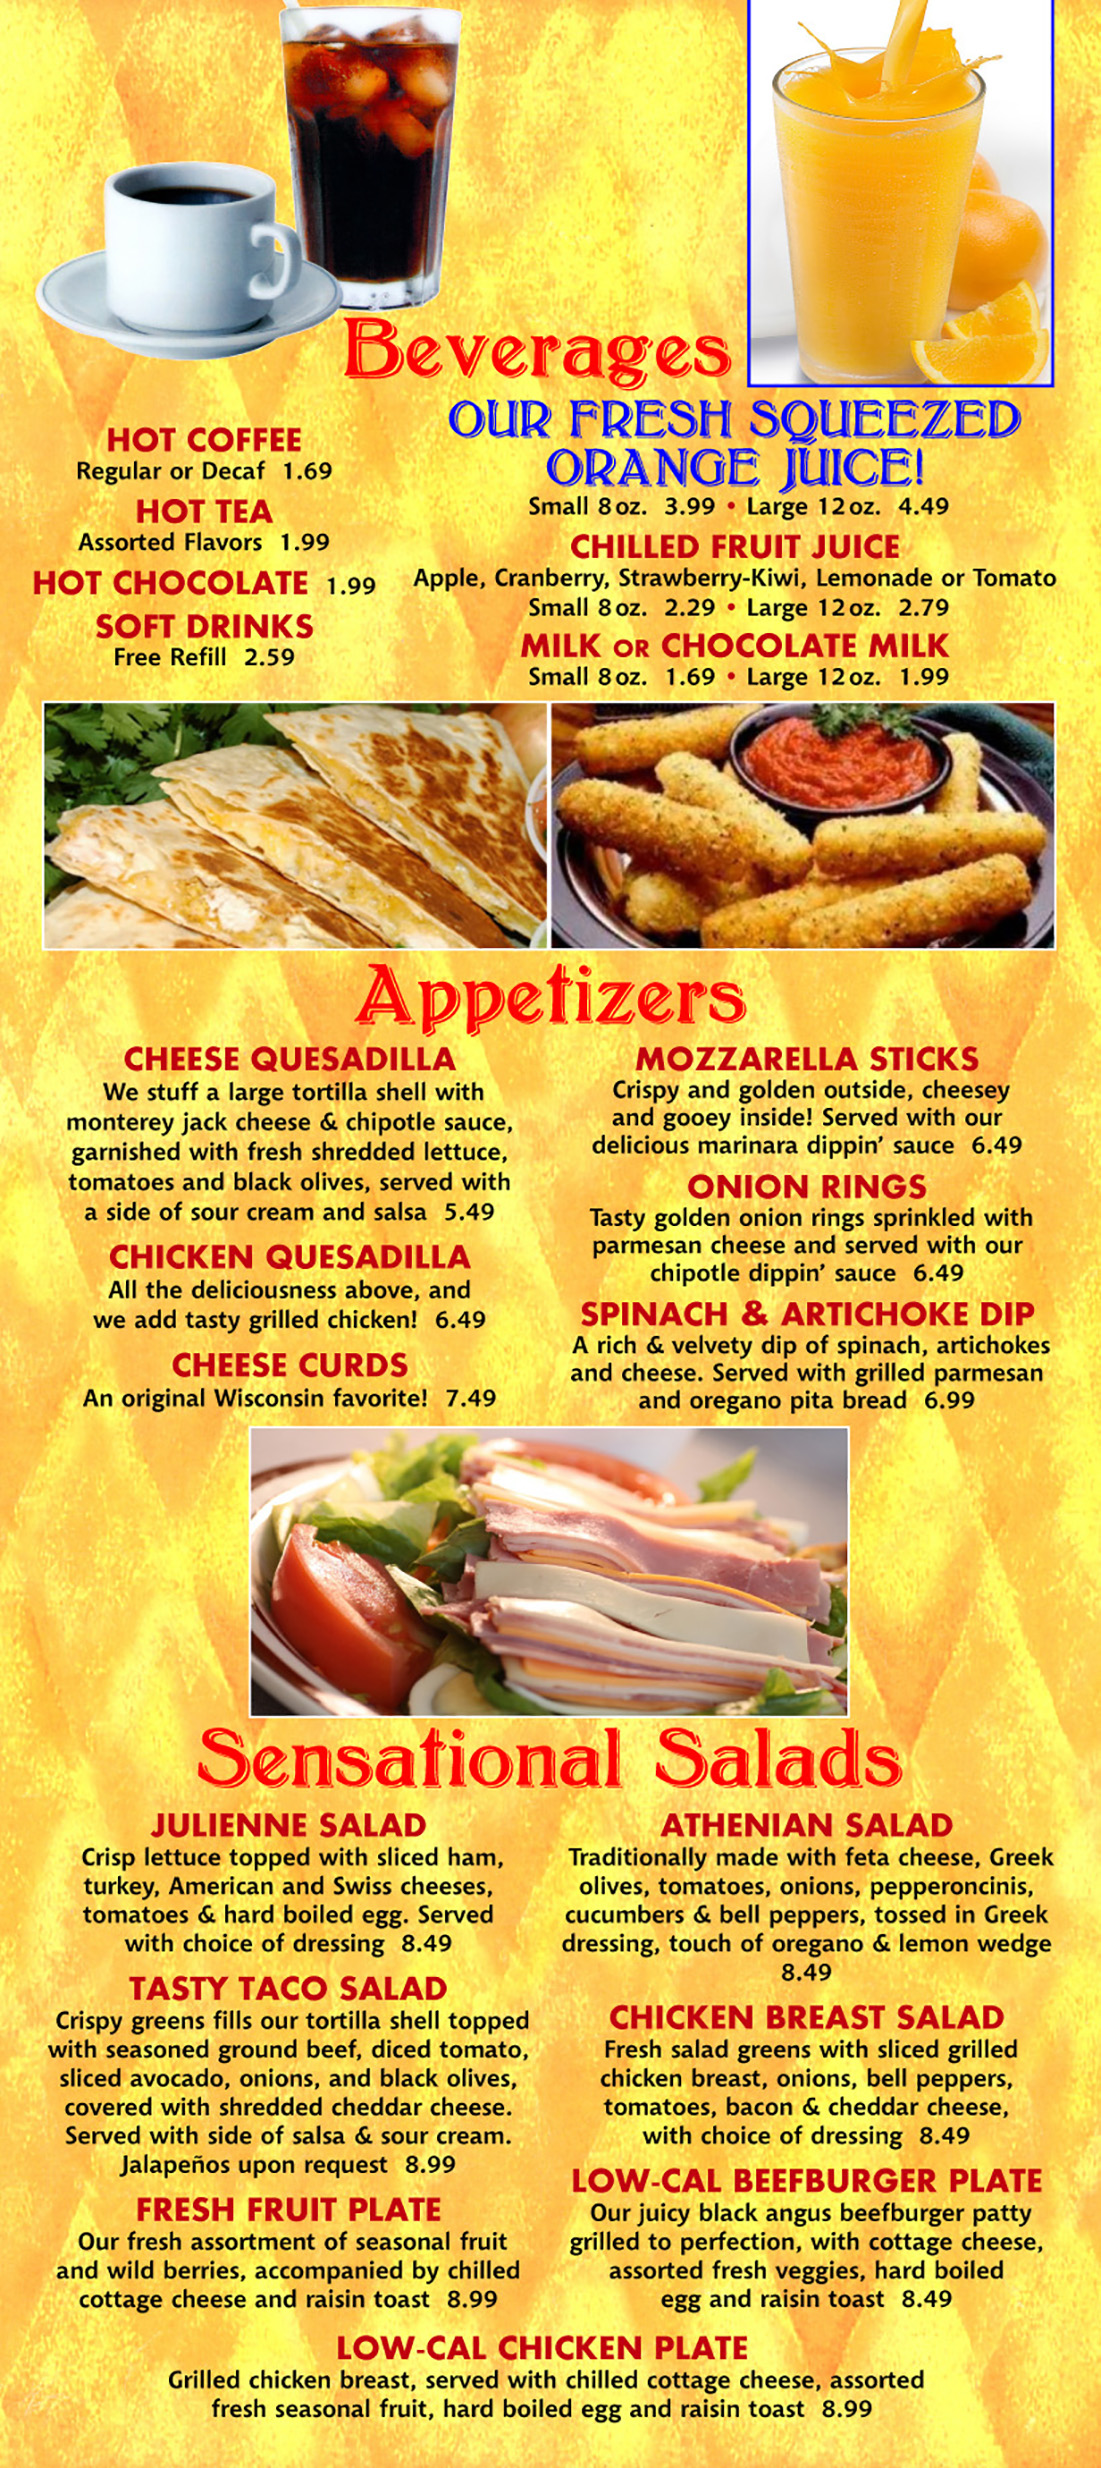 Beverages, Appetizers & Salads